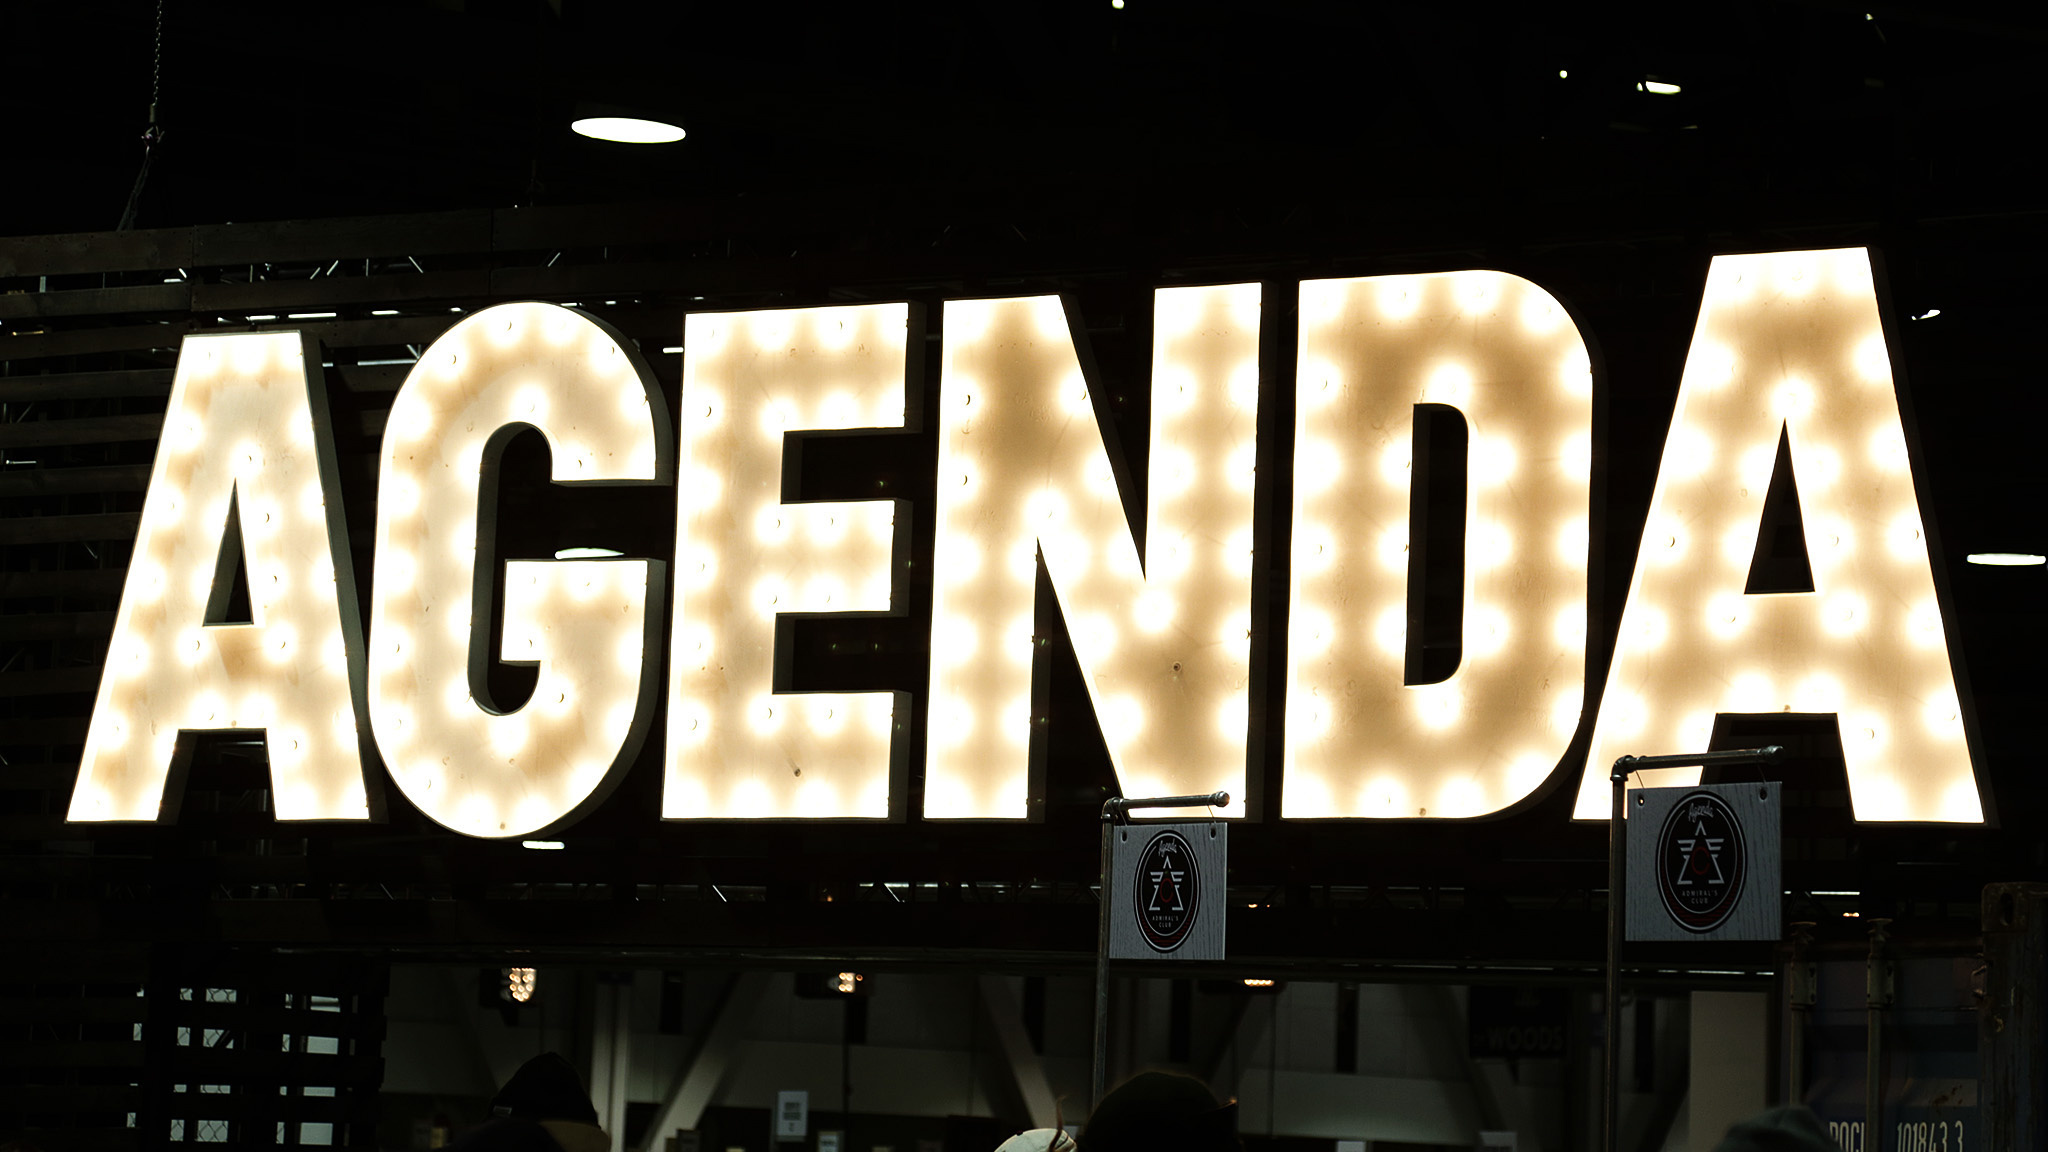 Welcome to Agenda Show 2014